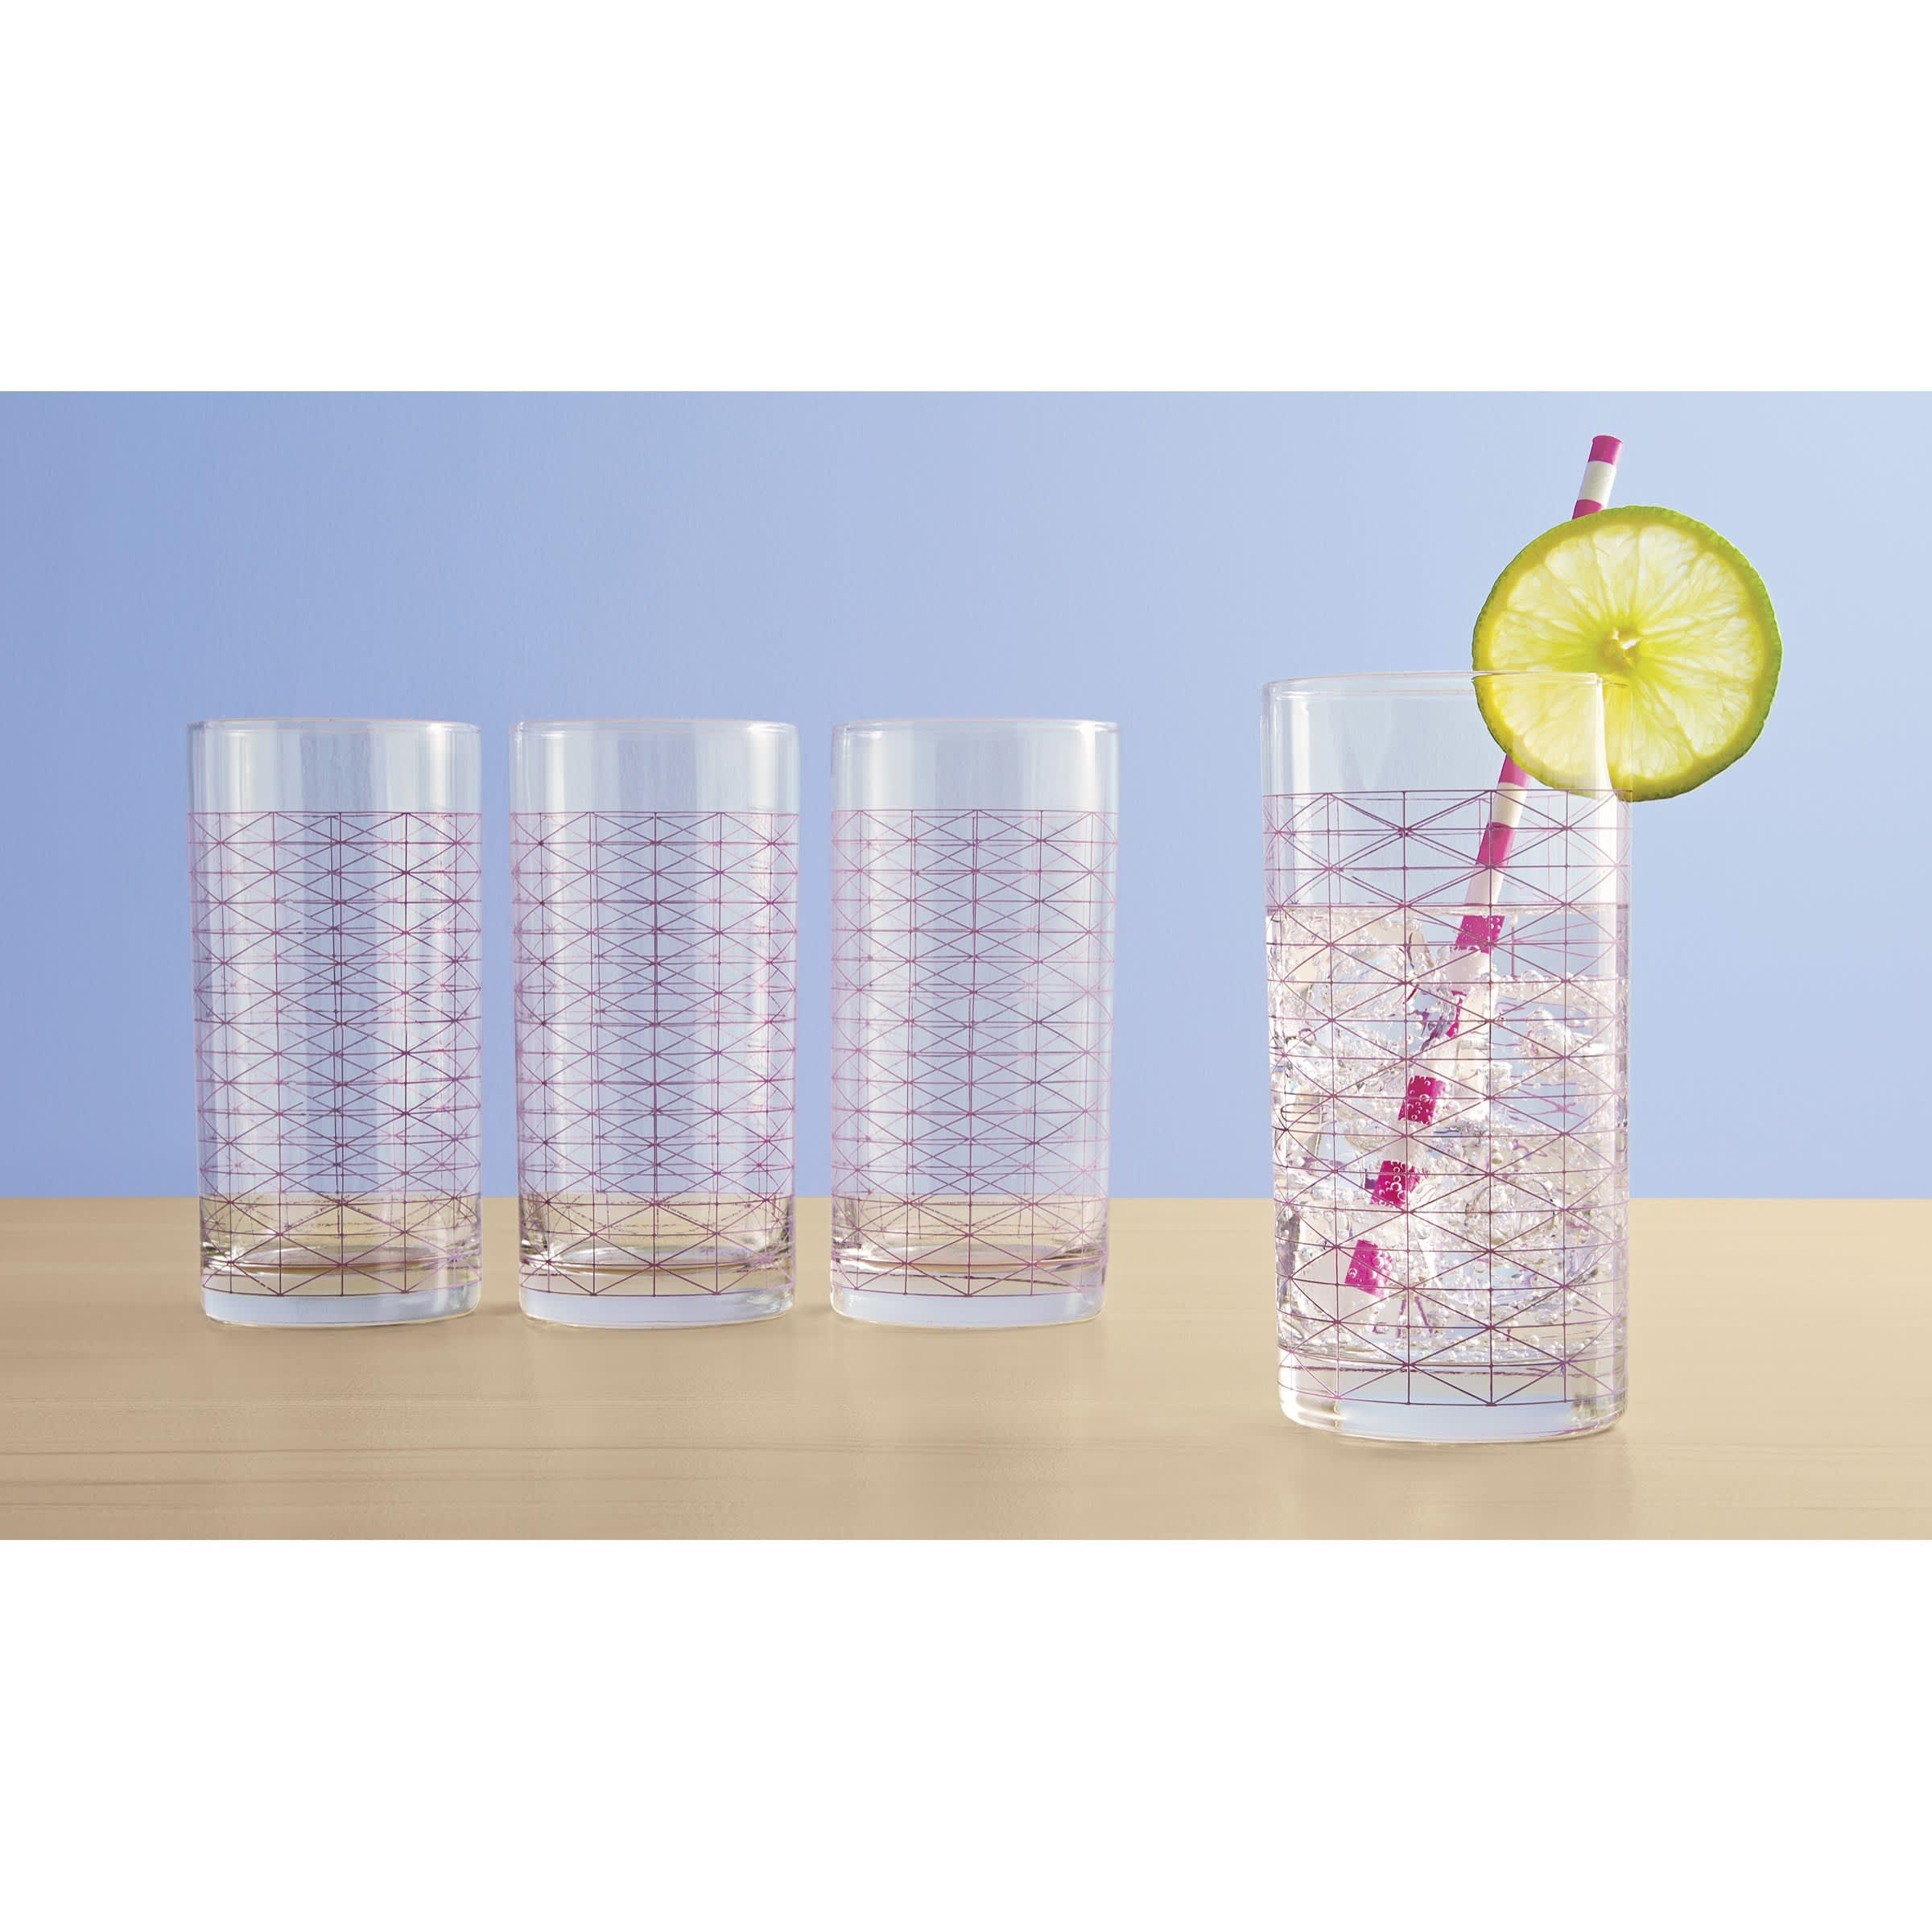 15 Patterned Glasses to Perk up Your Dinner Table: gallery image 8